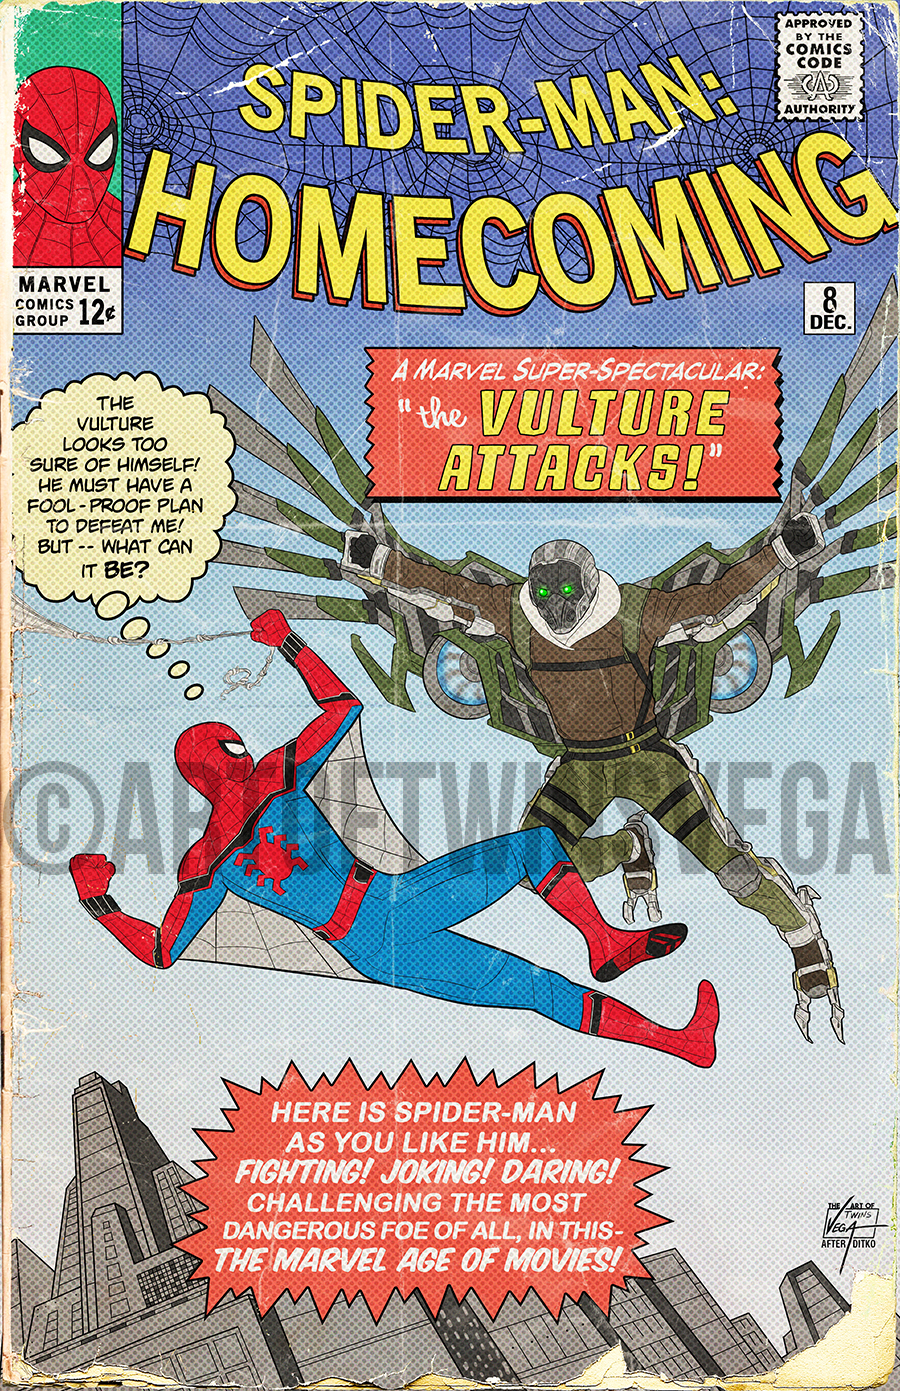 Spider-Man: Homecoming Vintage Cover · The Art of ...